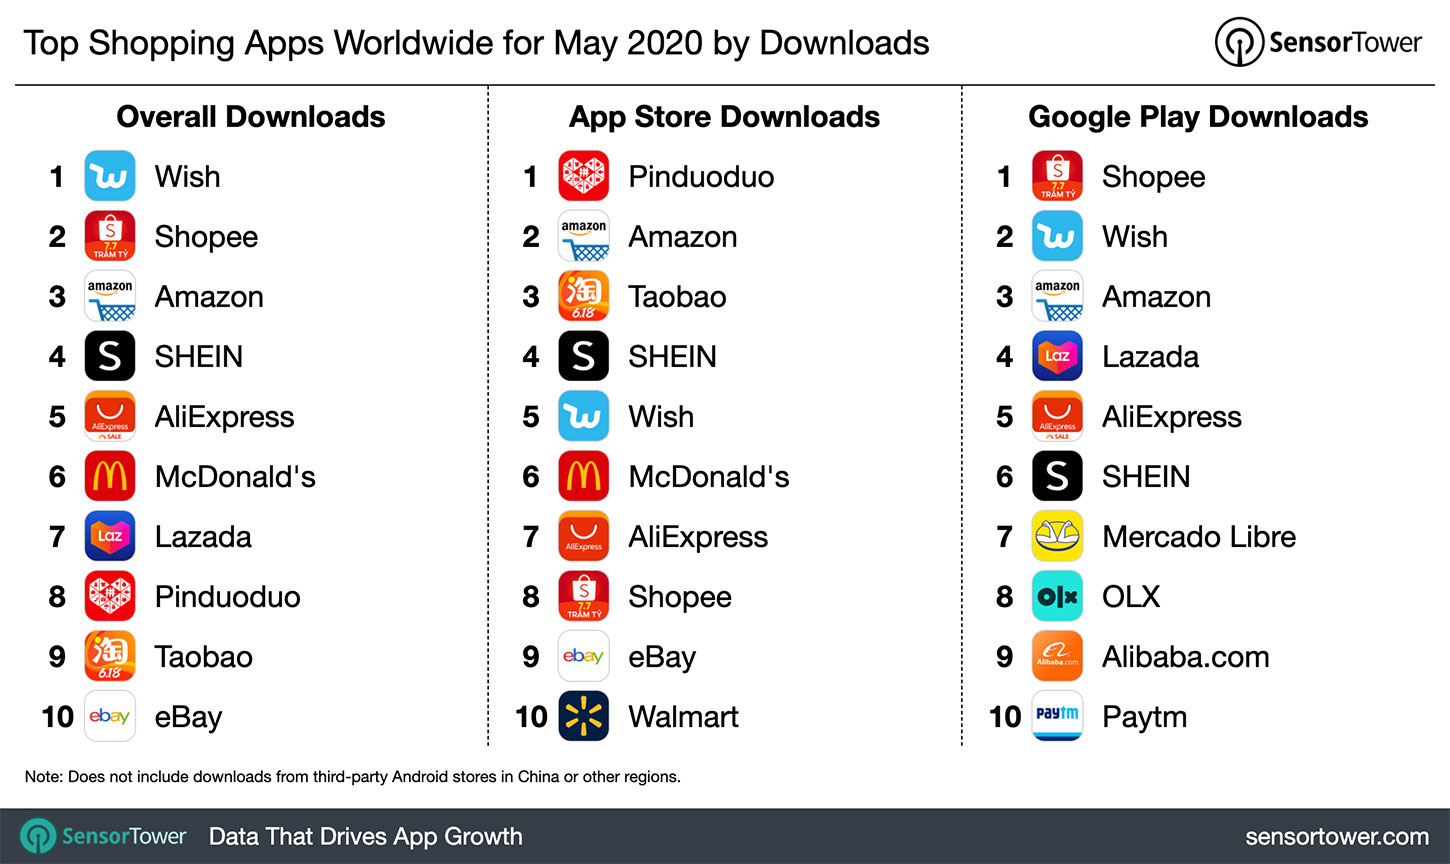 Top Shopping Category Apps Worldwide for May 2020 by Downloads